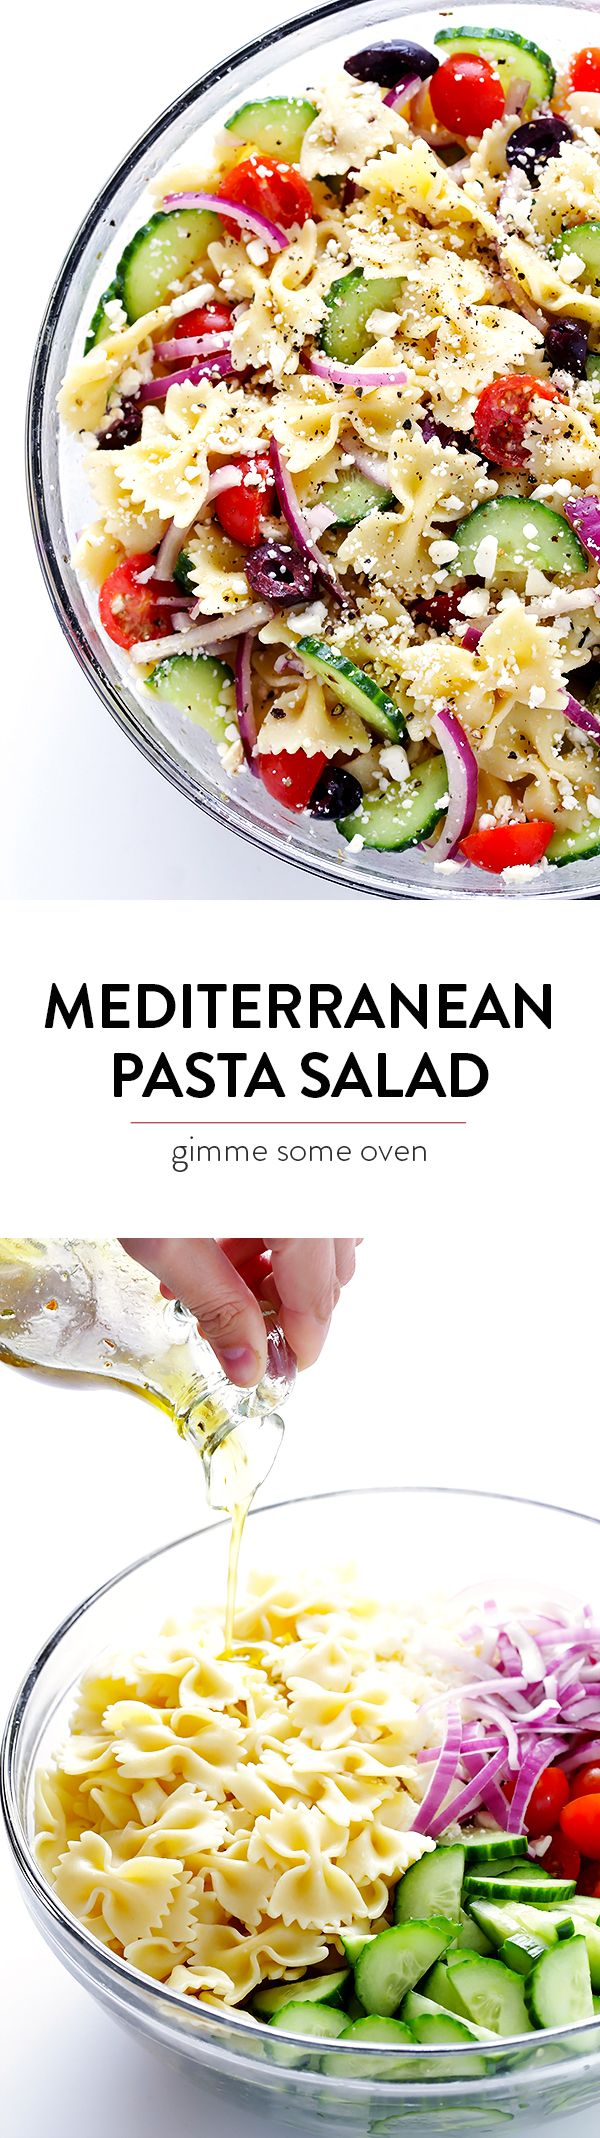 Mediterranean Pasta Salad -- quick and easy to make, and tossed with a tasty lemon-herb vinaigrette | gimmesomeoven.com